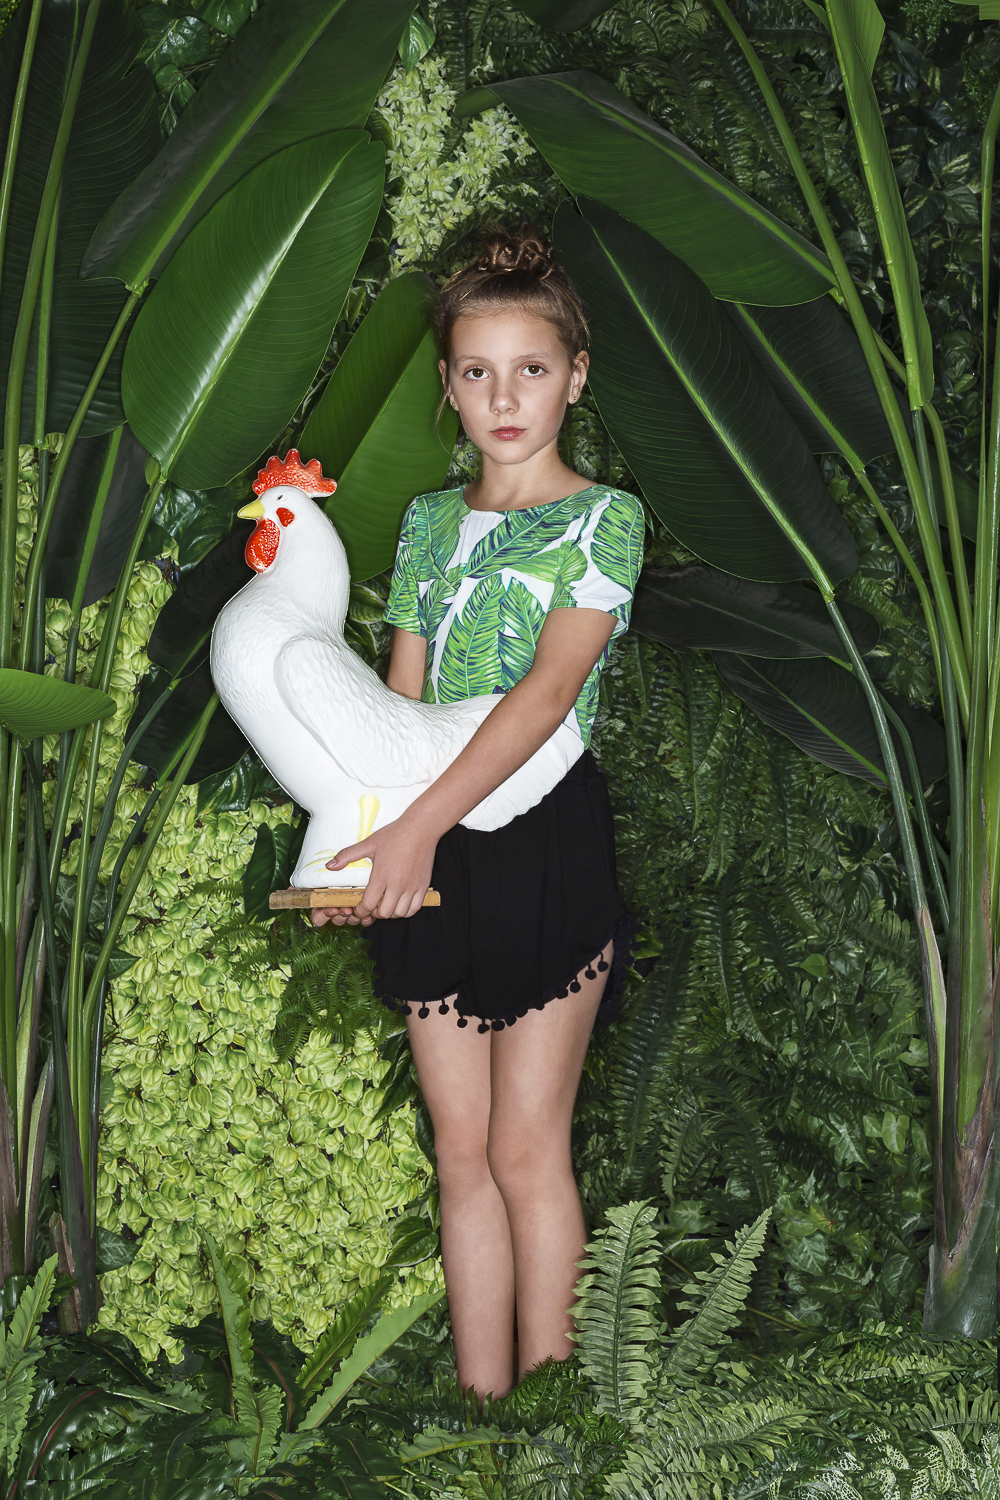 Anya for HOWI.  Issue 1 of The Little Mag